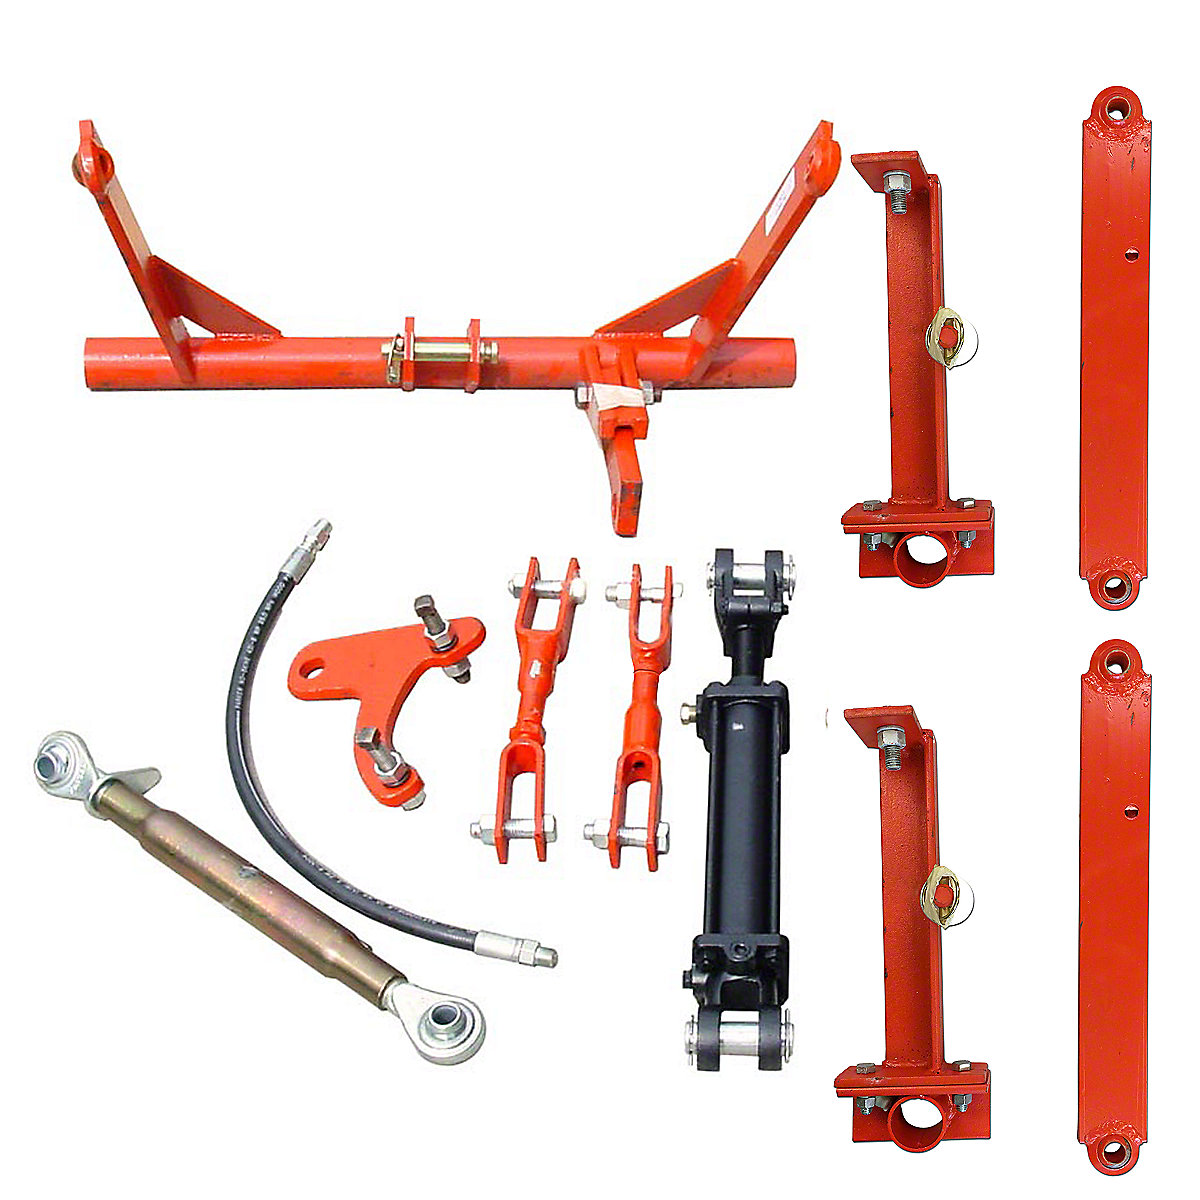 ACS015 3 Point Hitch Conversion Kit